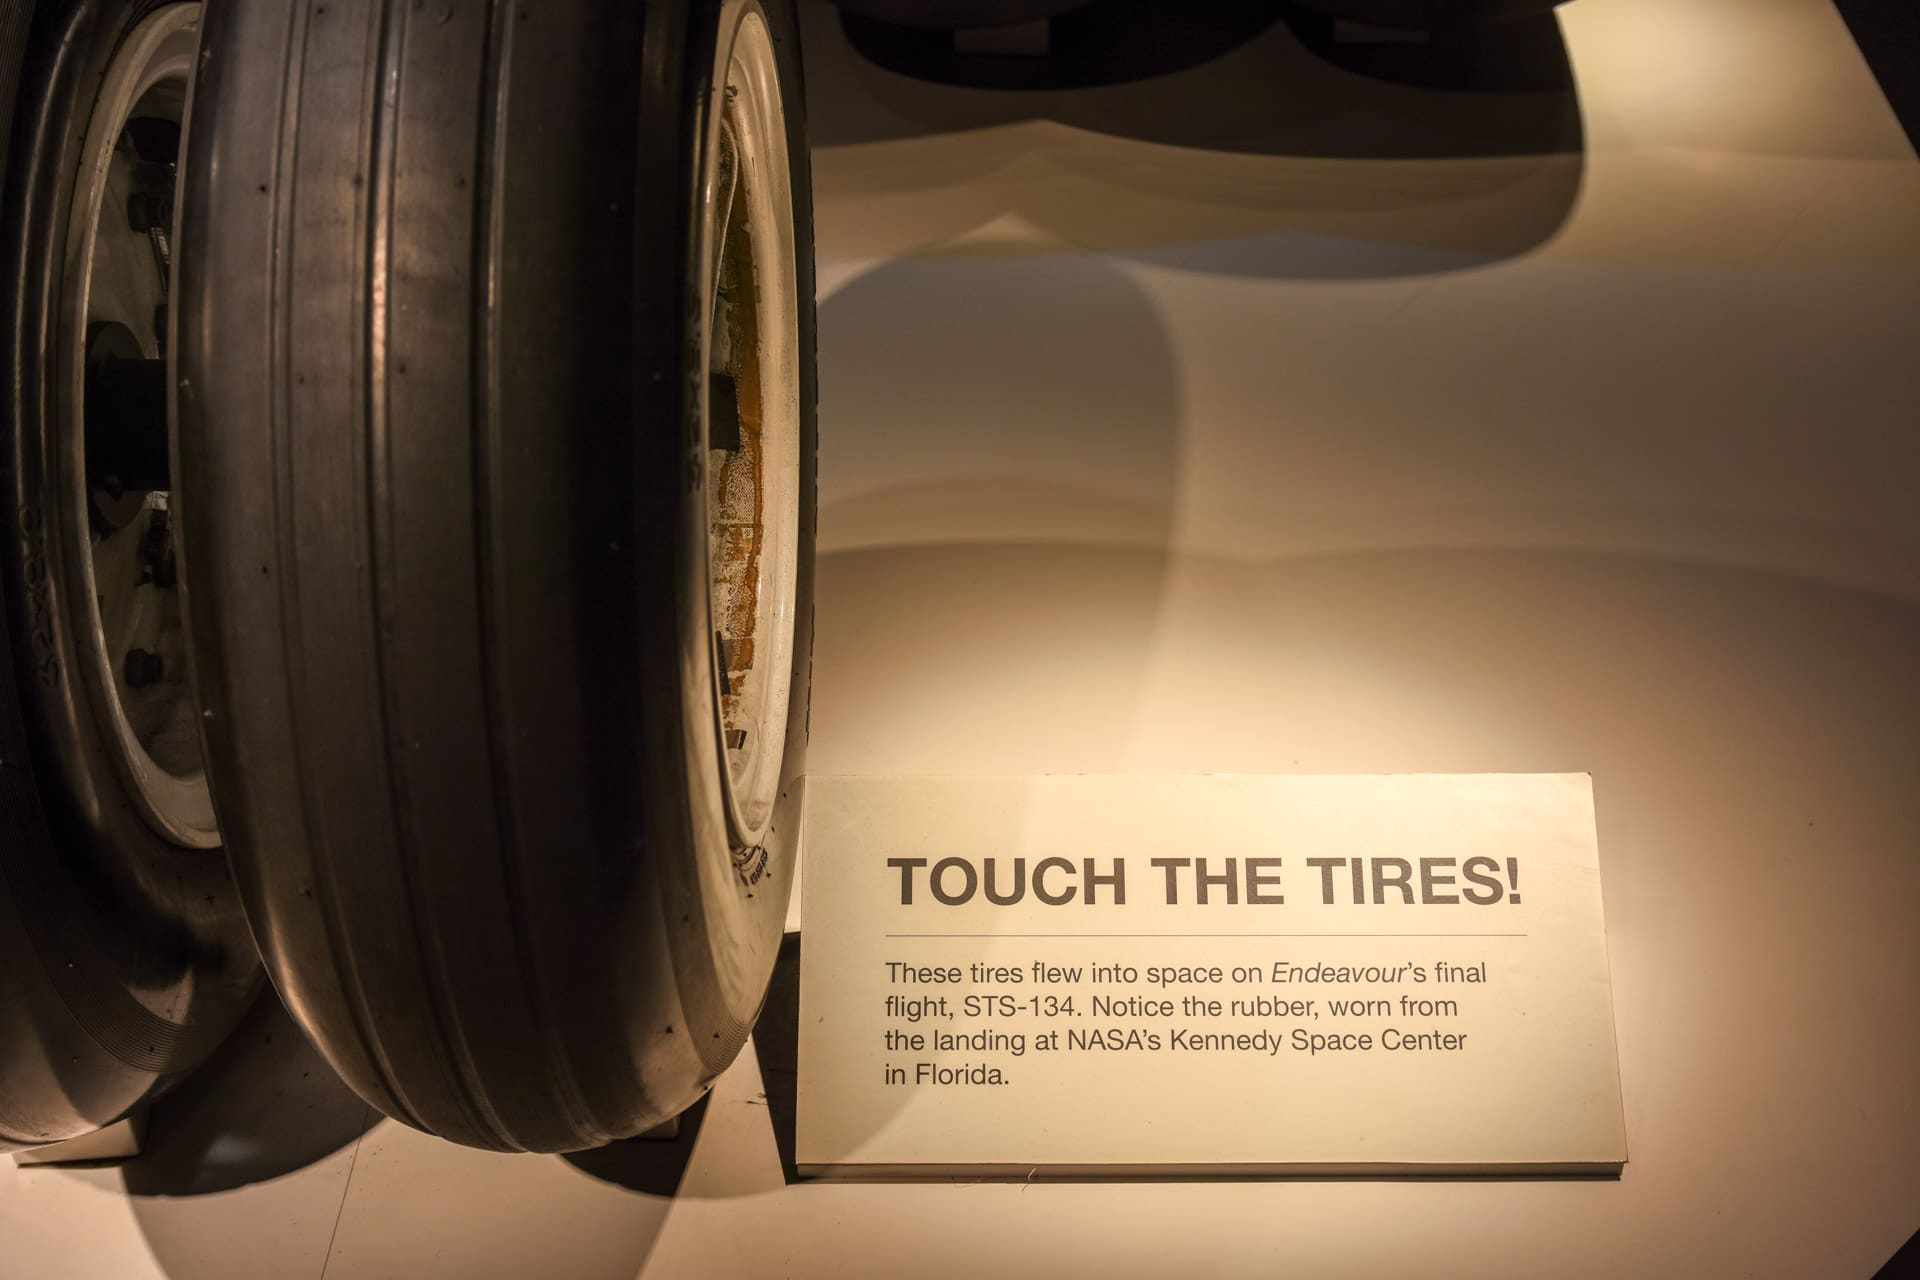 Touch the Tires